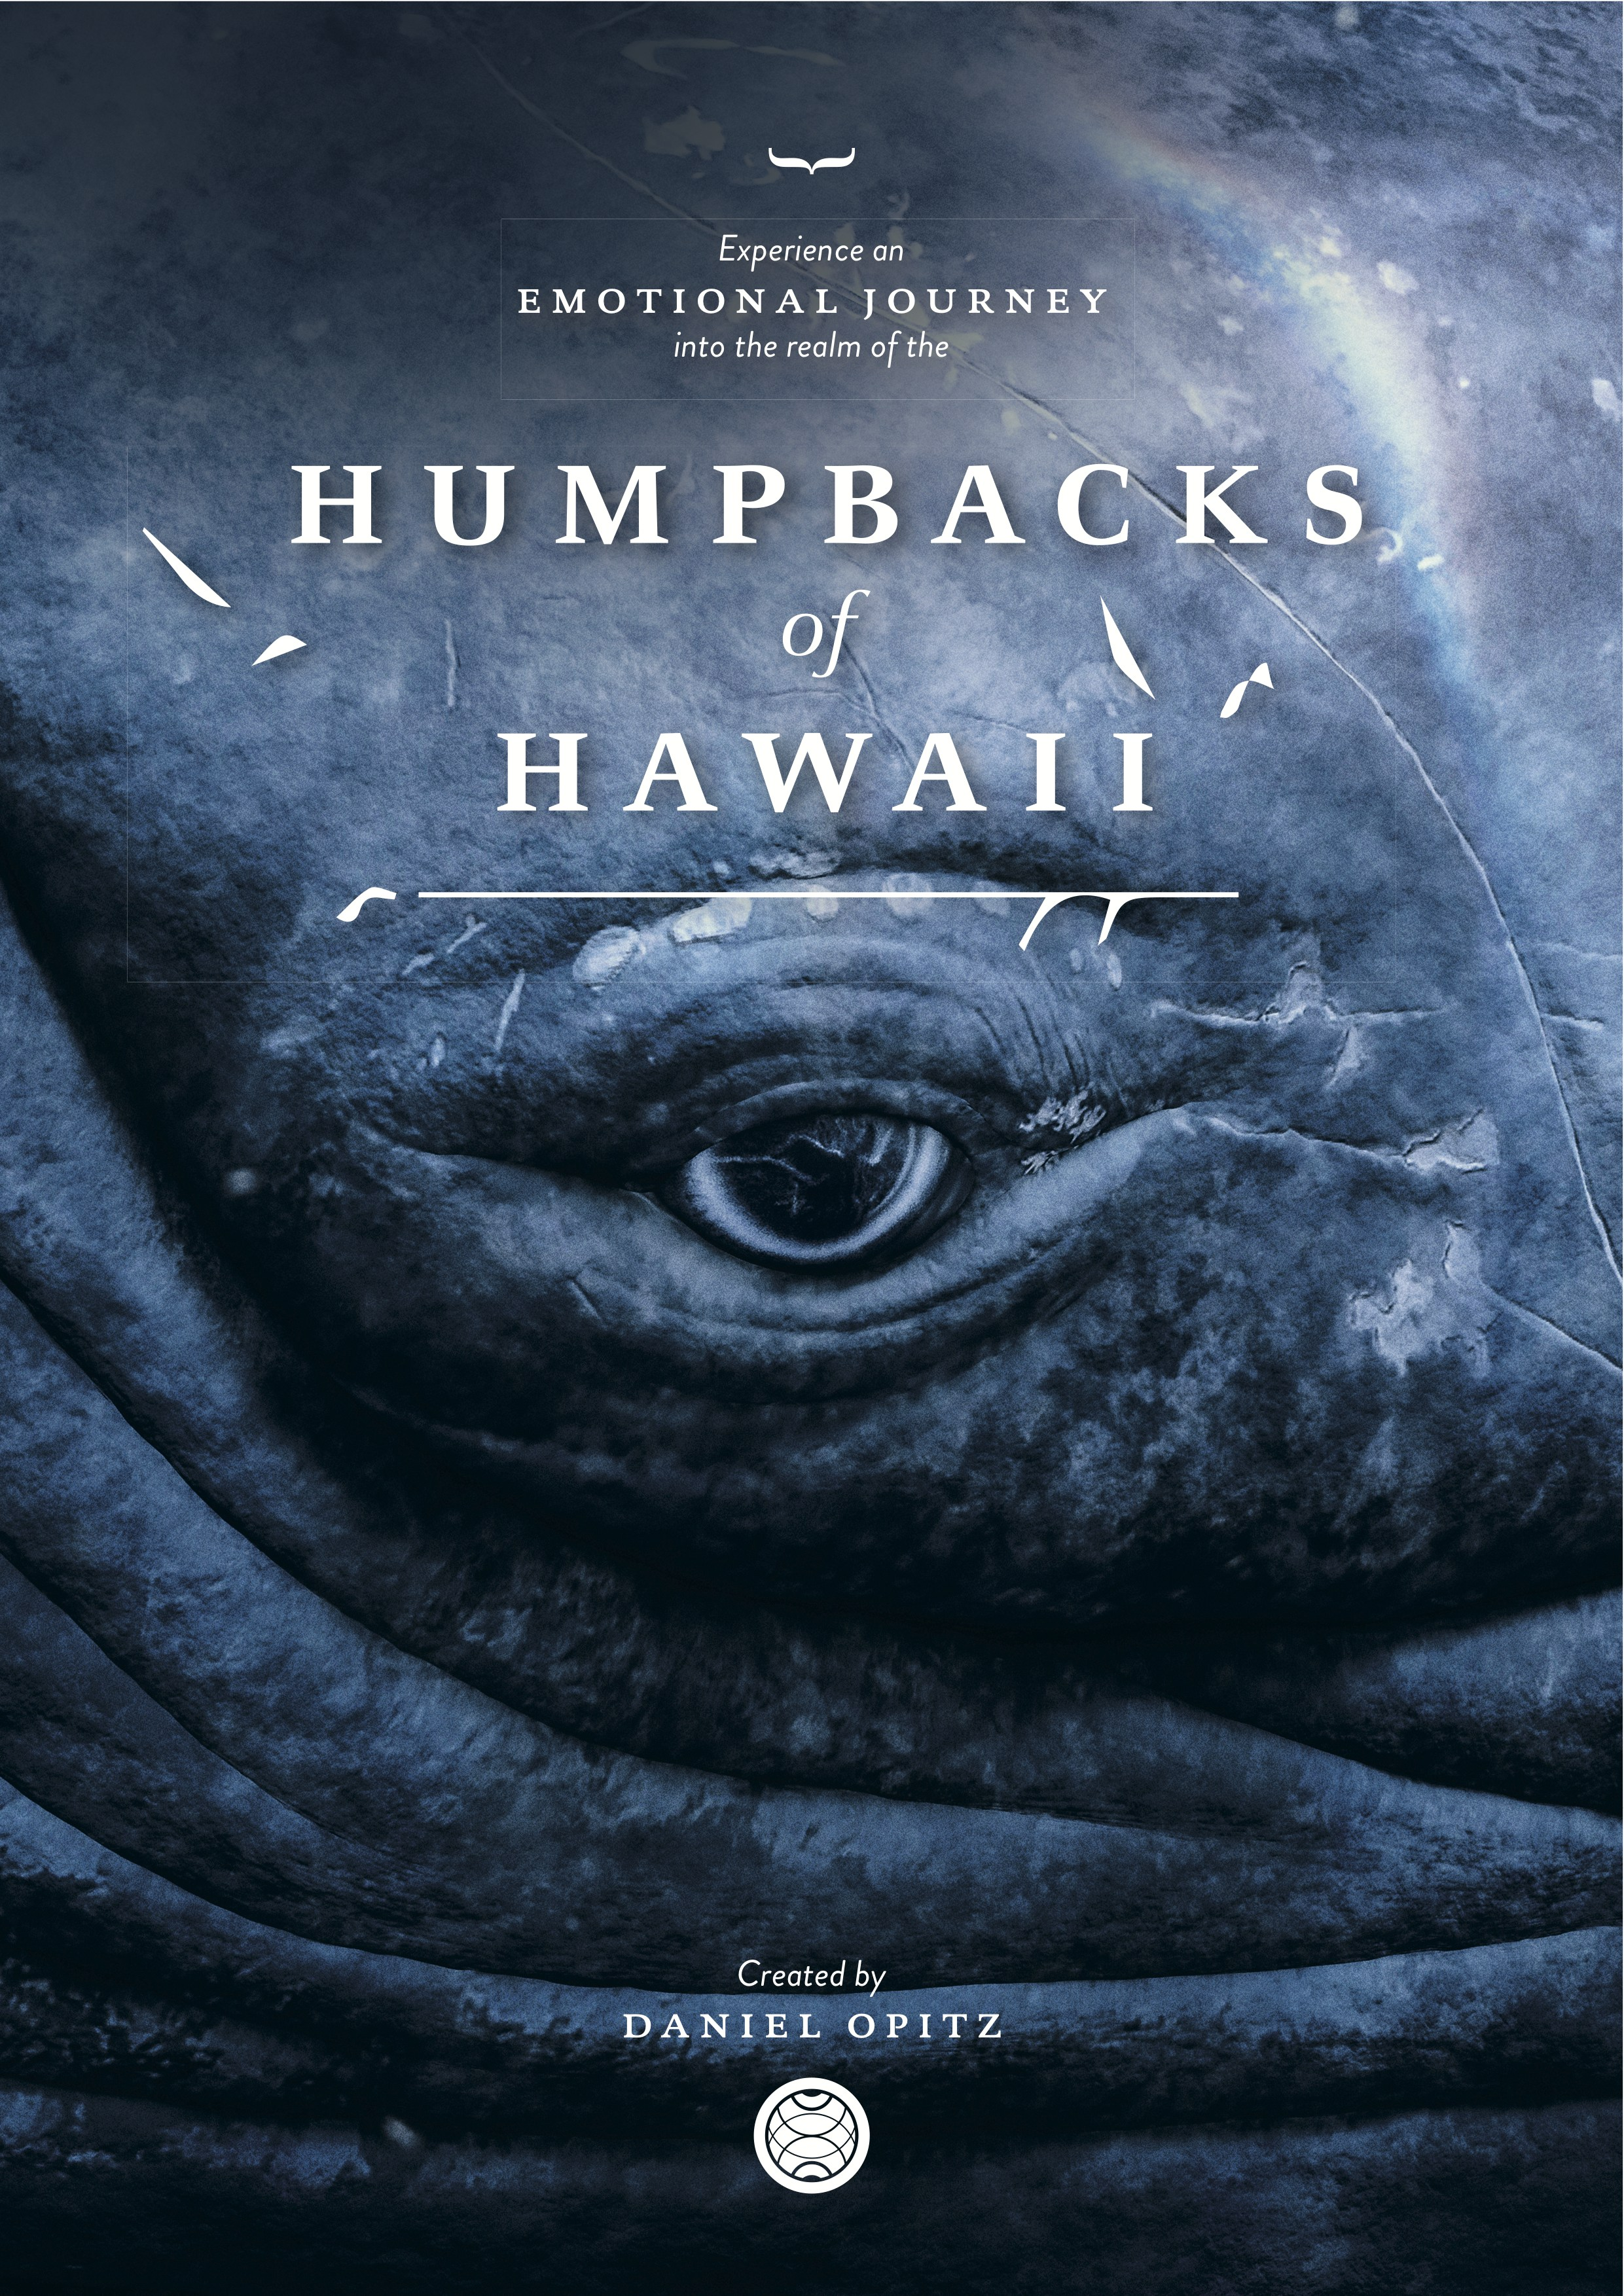 "HUMPBACKS OF HAWAII - The Humpback Whale is one of the worlds best loved creatures, yet surprisingly little is known about their behavior, communication or biology. This fully immersive installation reveals the secrets of these mysterious animals, breaks down the structure of their songs, and looks into their fascinating behavior. Stunning computer generated recreations of real underwater images and sounds take the viewer into the Humpback world like never before.The technical core of this immersive experience is a novel 360°-3D image and sound simulator enabling to provide mind blowing presentations of novel depth and audio-visual attraction. Modern technology makes the dome appear as a transparent observation lounge, allowing the viewer to virtually dive with majestic whales in their natural environmentAffecting the viewer by its infinite vastness, its variety and its beauty, the ""blue"" universe off Maui will be experienced in a revolutionary and deeply emotional way.Find out more HERE"